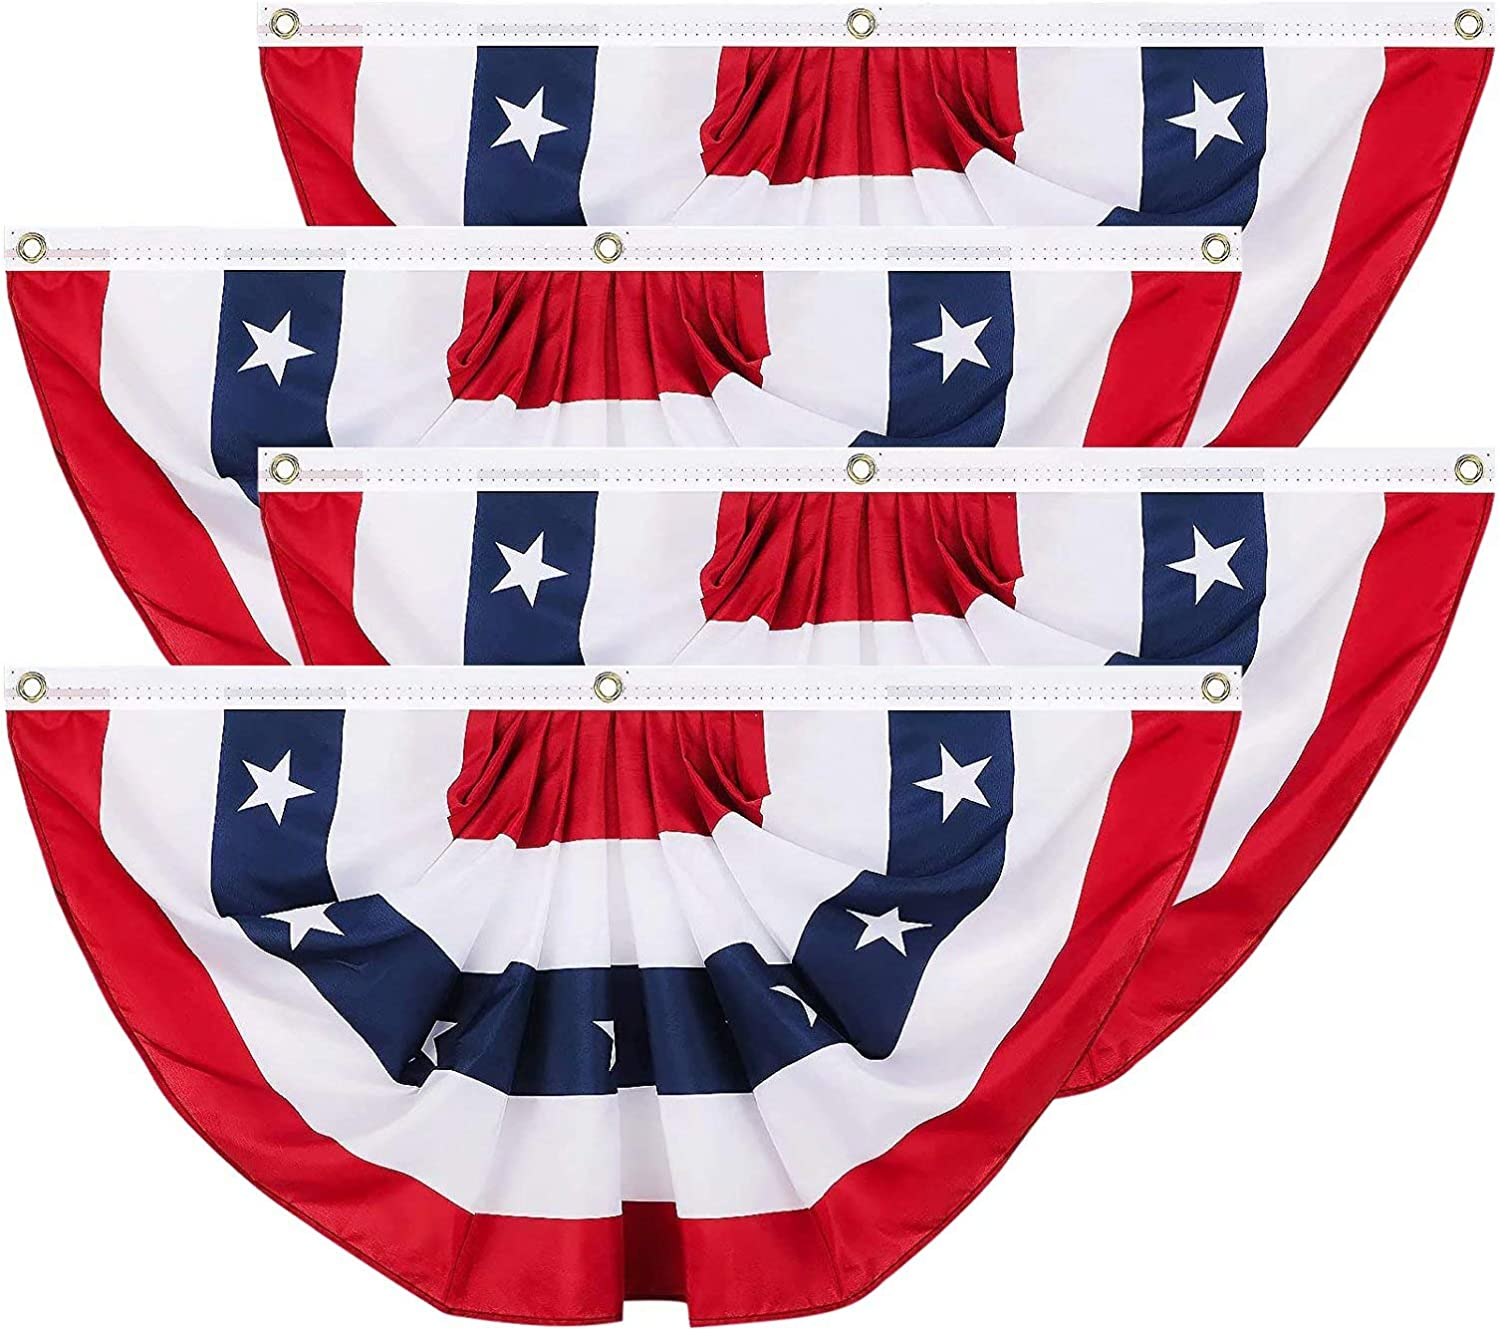 Brave Max 64% OFF Tour 4 Pcs USA Pleated Independence Day Max 40% OFF Flag Fan Decoratio